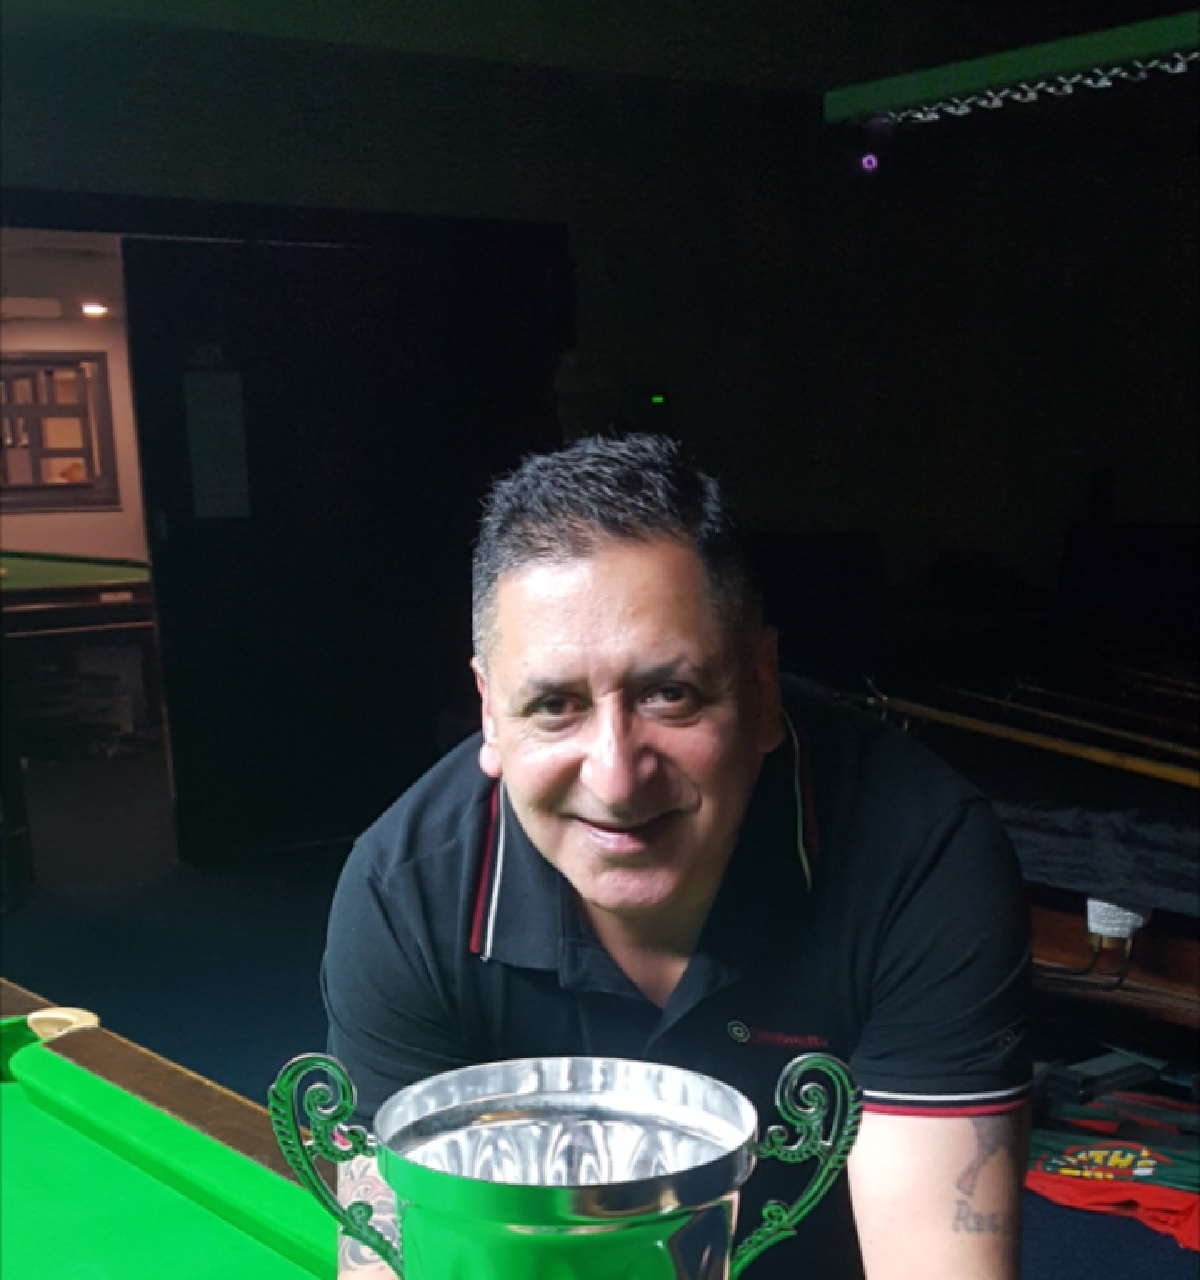 Sonny Sandhu (Undercliffe Cricket Club), who won the Bradford Snooker Handicap title, defeating Craig Davies (Tong Liberal) 3-1 in the final at Eccleshill Victoria Conservative Club